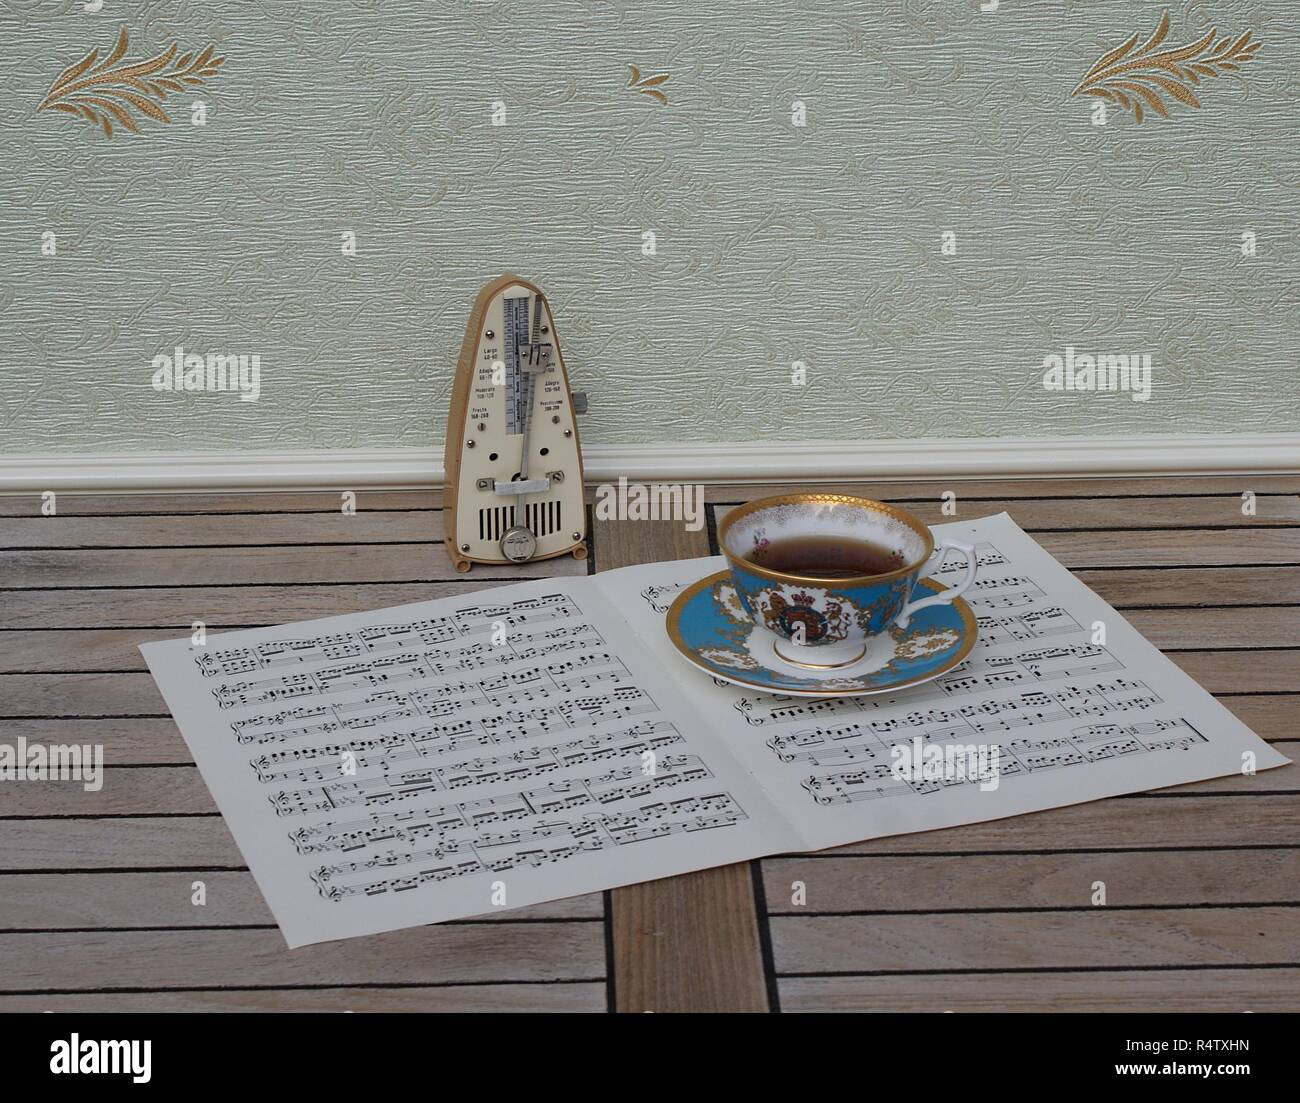 English teacup with saucer, fine bone china porcelain, and a metronome for music on a sheet of music - Stock Image